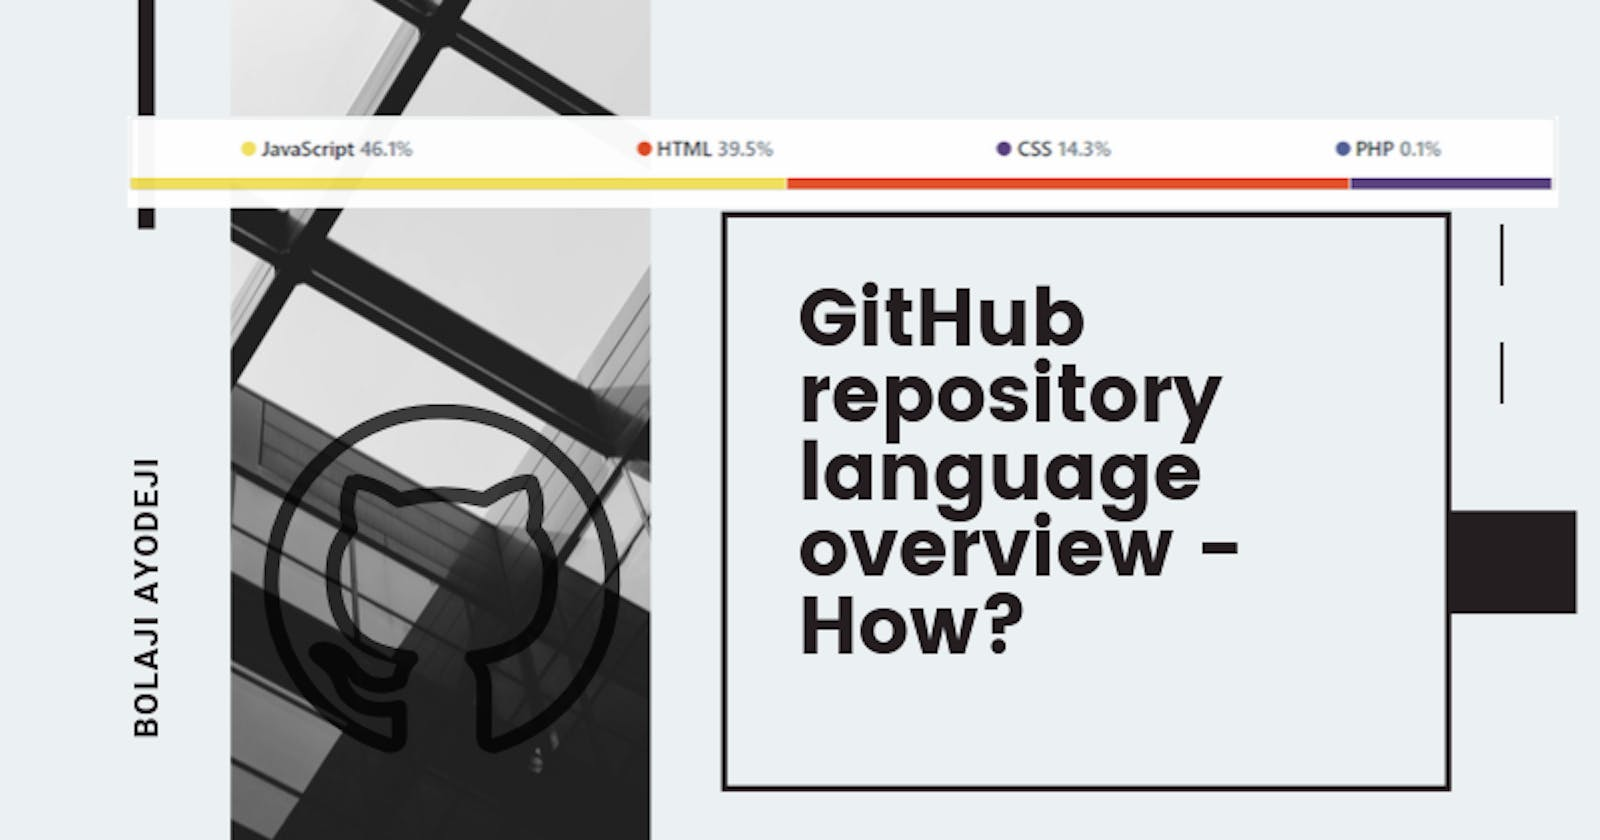 GitHub repository language overview - How?